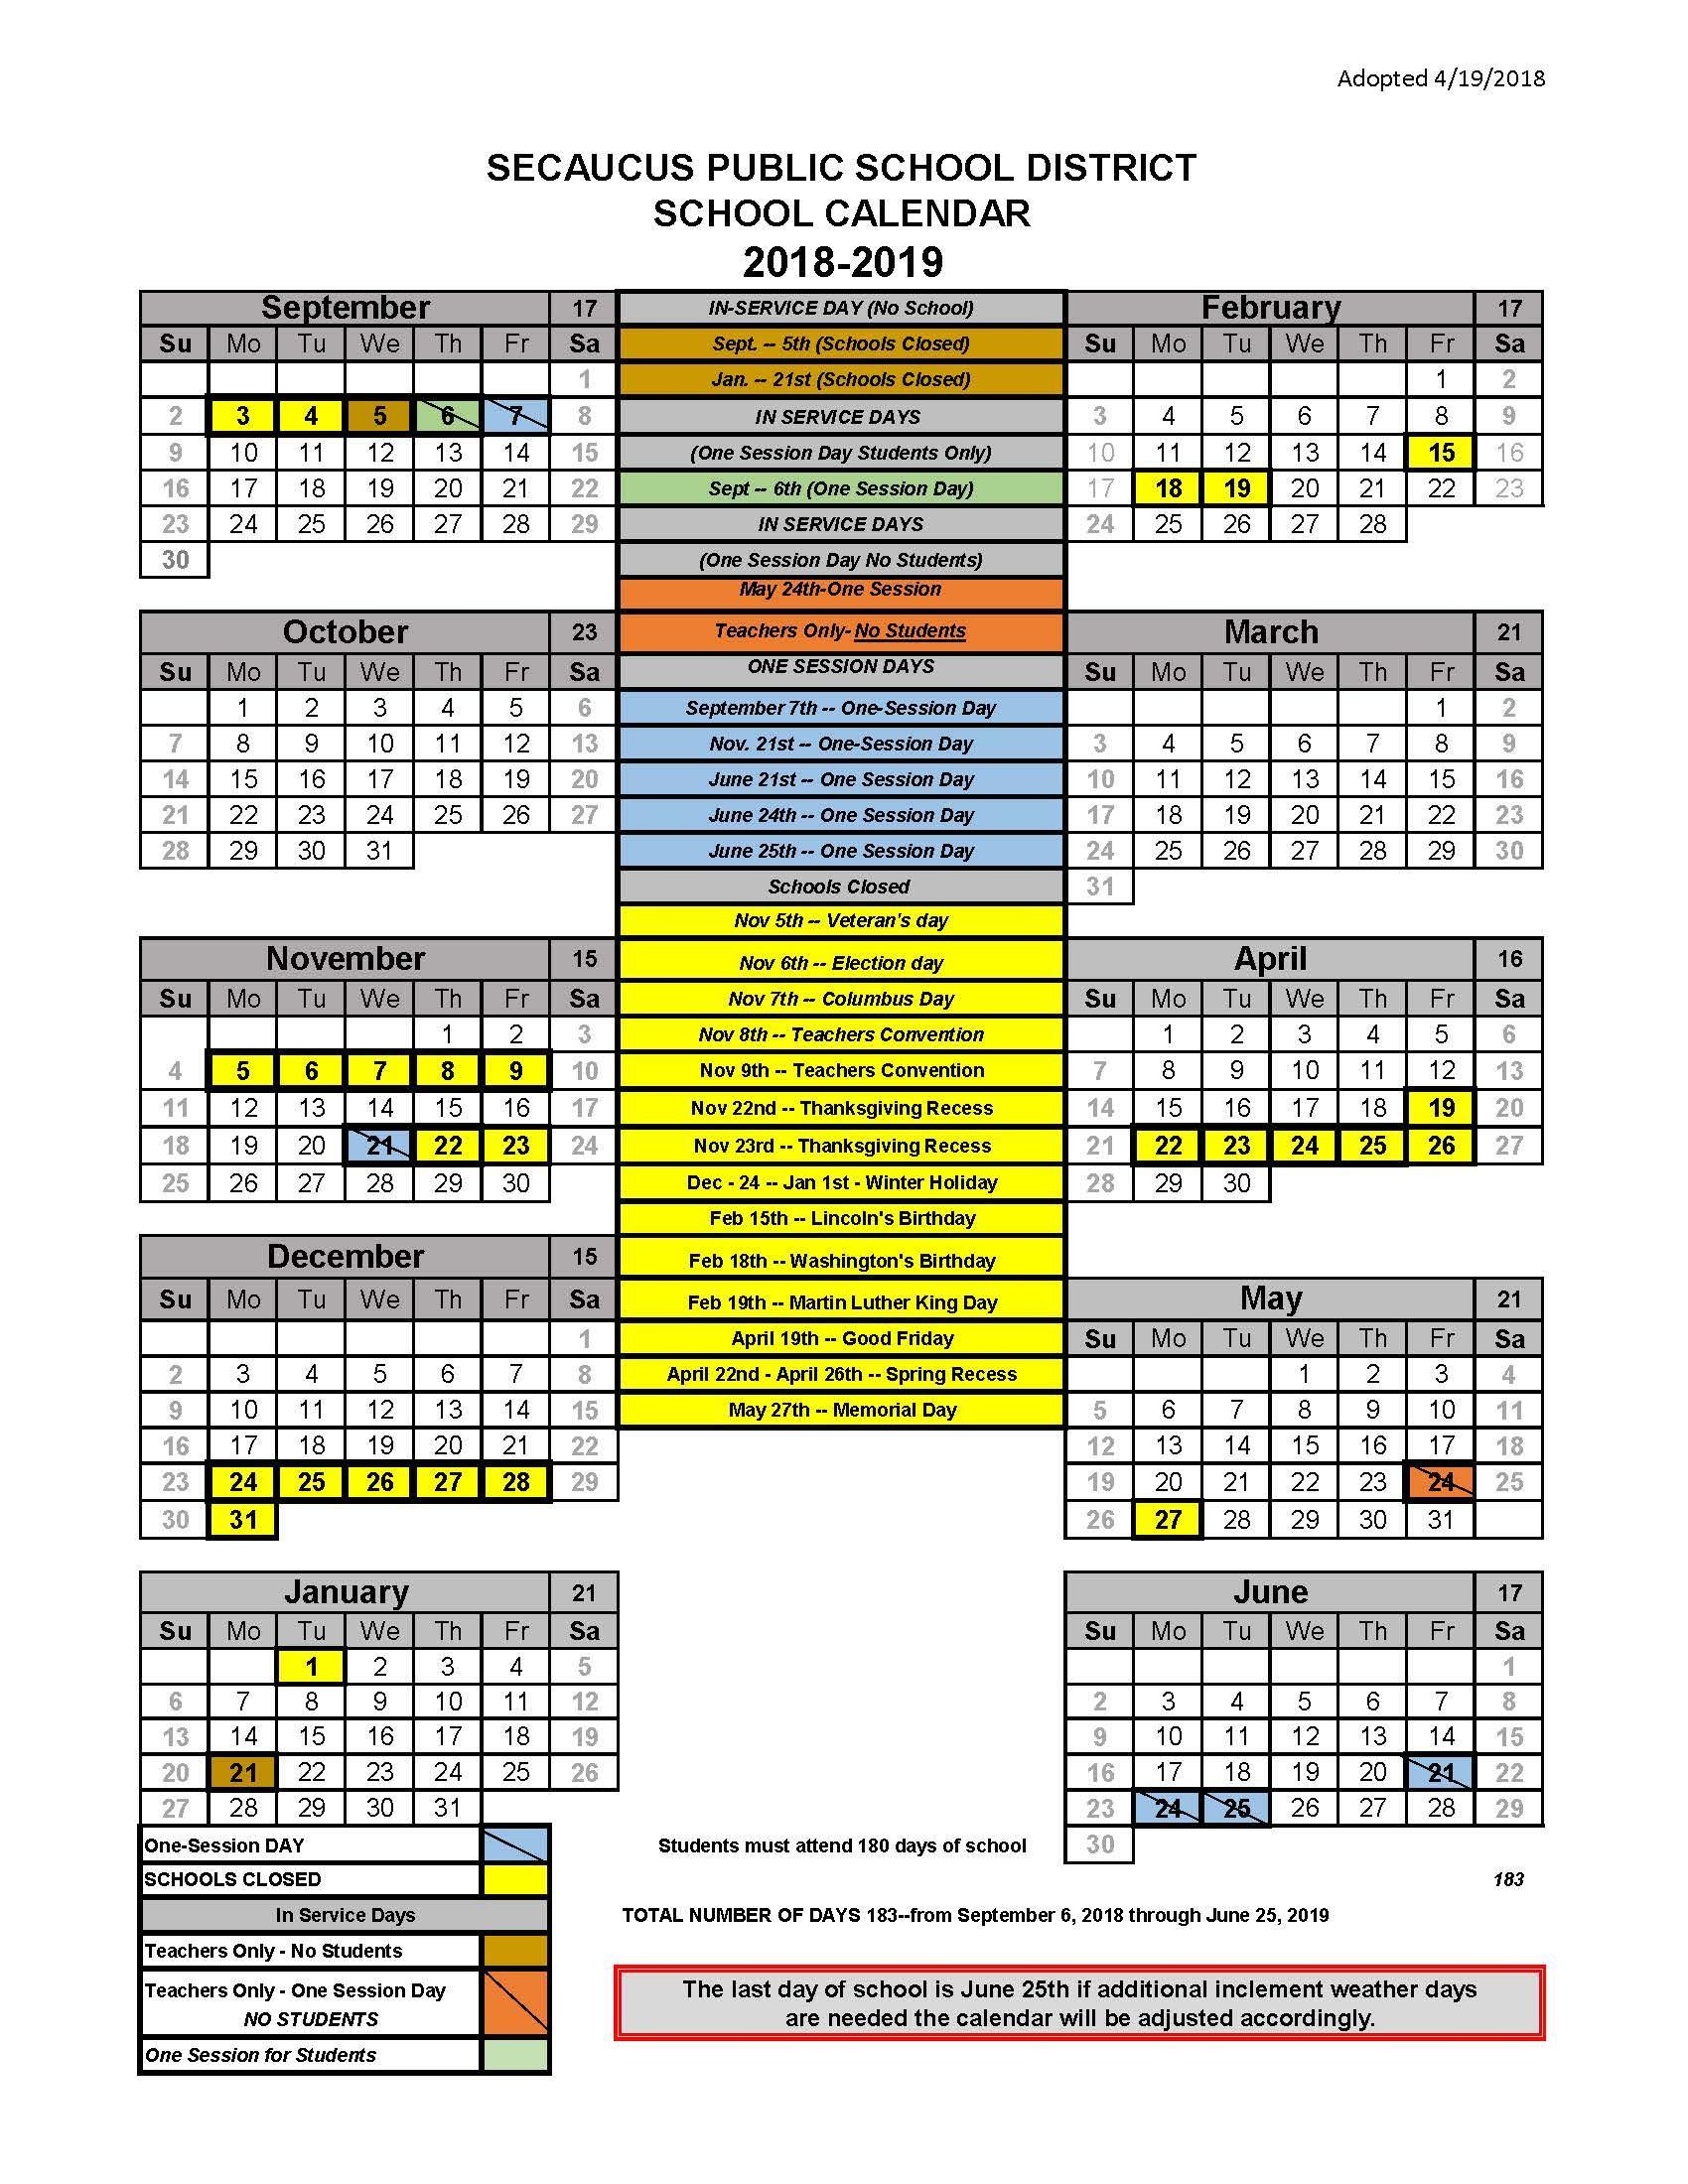 Print Bell Schedules / School Year Calendar – I Want To